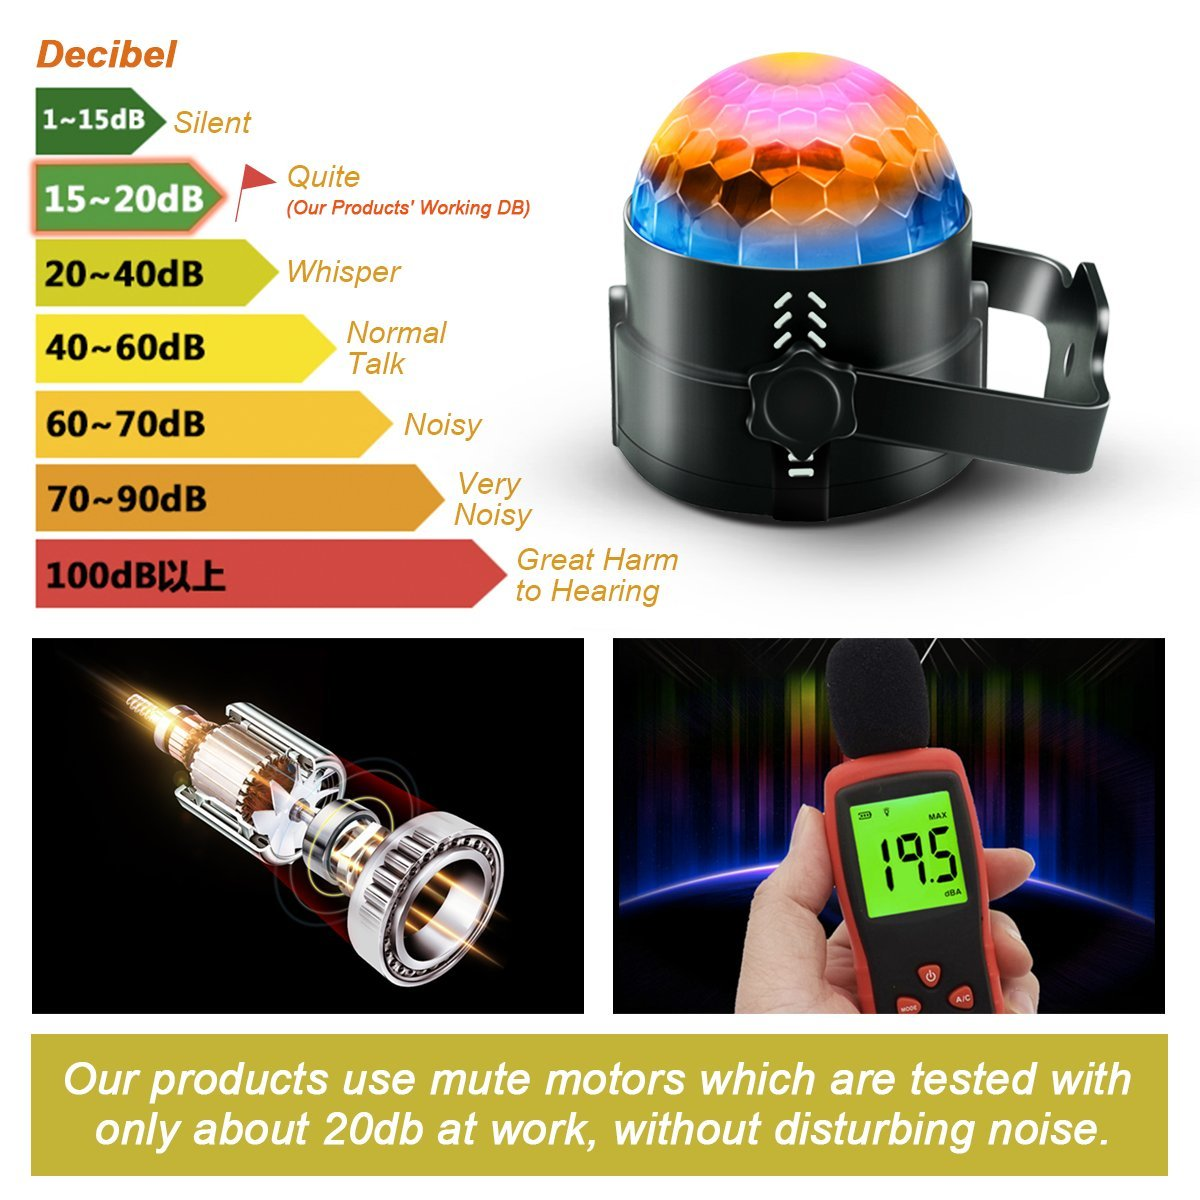 Party Supplies Disco Ball DJ Lights - Sound Activated LED lights with Remote Control RGB Strobe Lamp Stage Light for Home Dance Birthday Bar Karaoke Wedding Show by BOOMRO (Image #3)